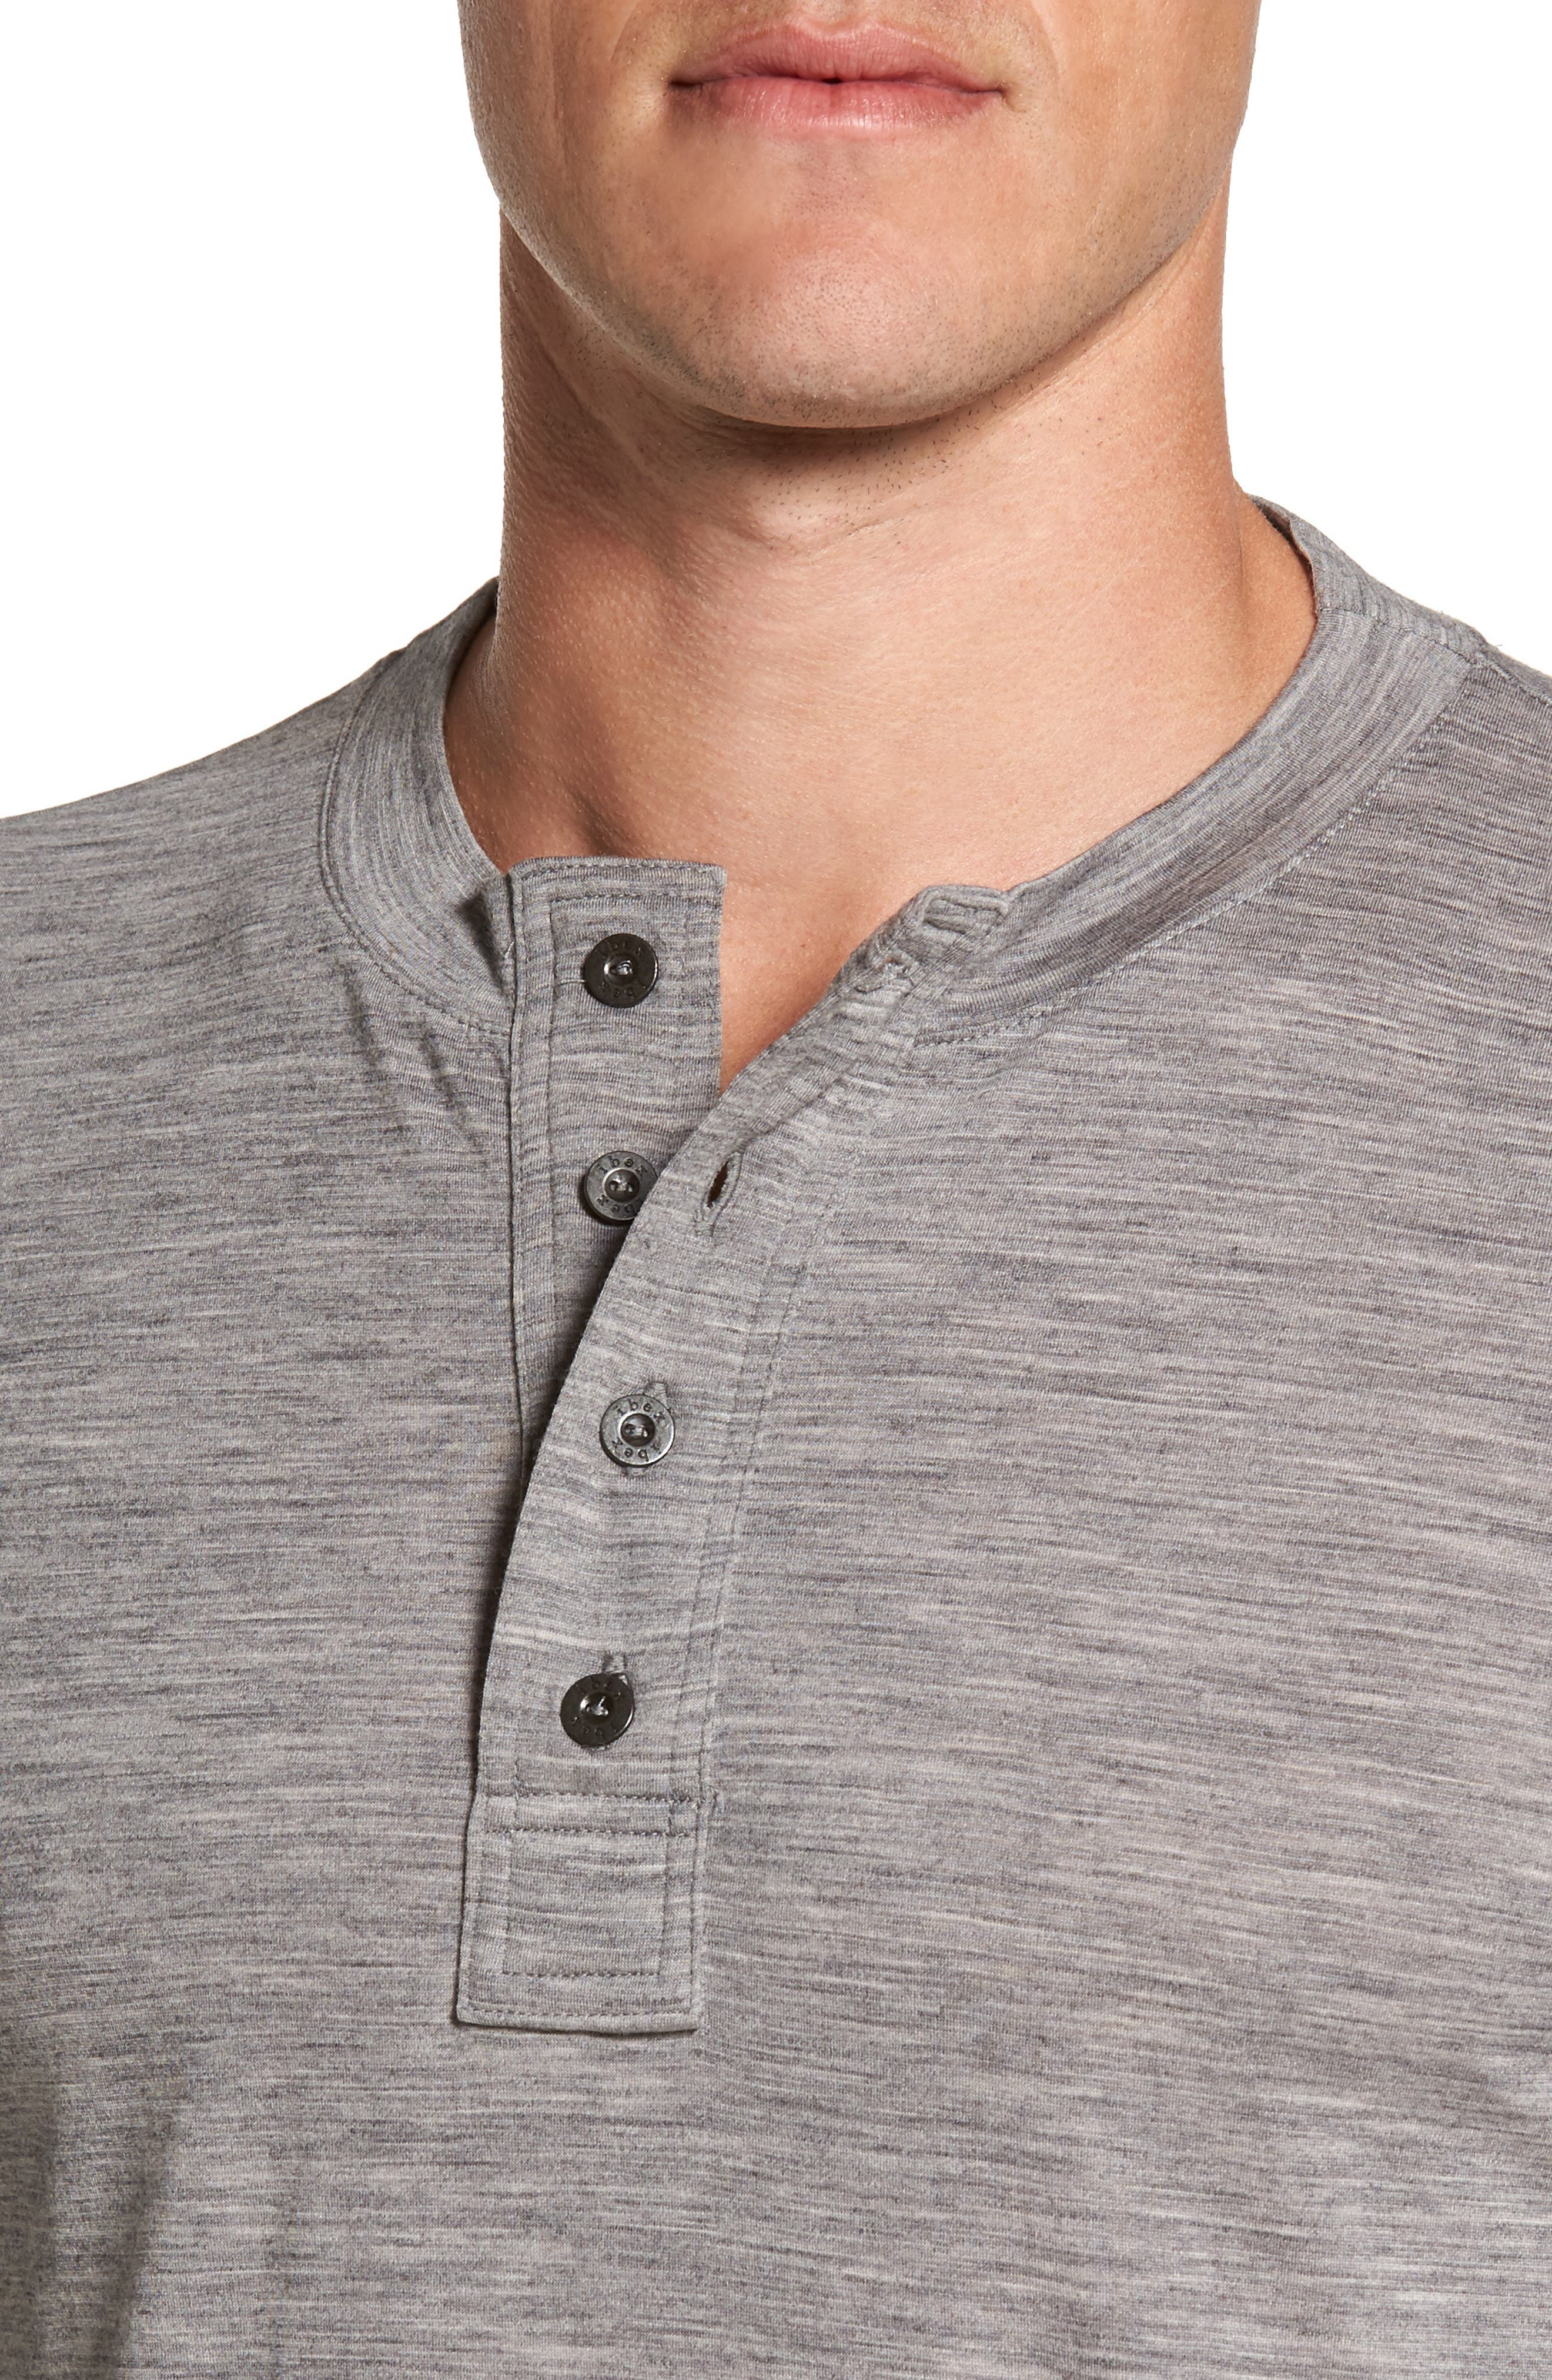 Odyssey Merino Wool Blend Henley,                             Alternate thumbnail 4, color,                             Stone Grey Heather